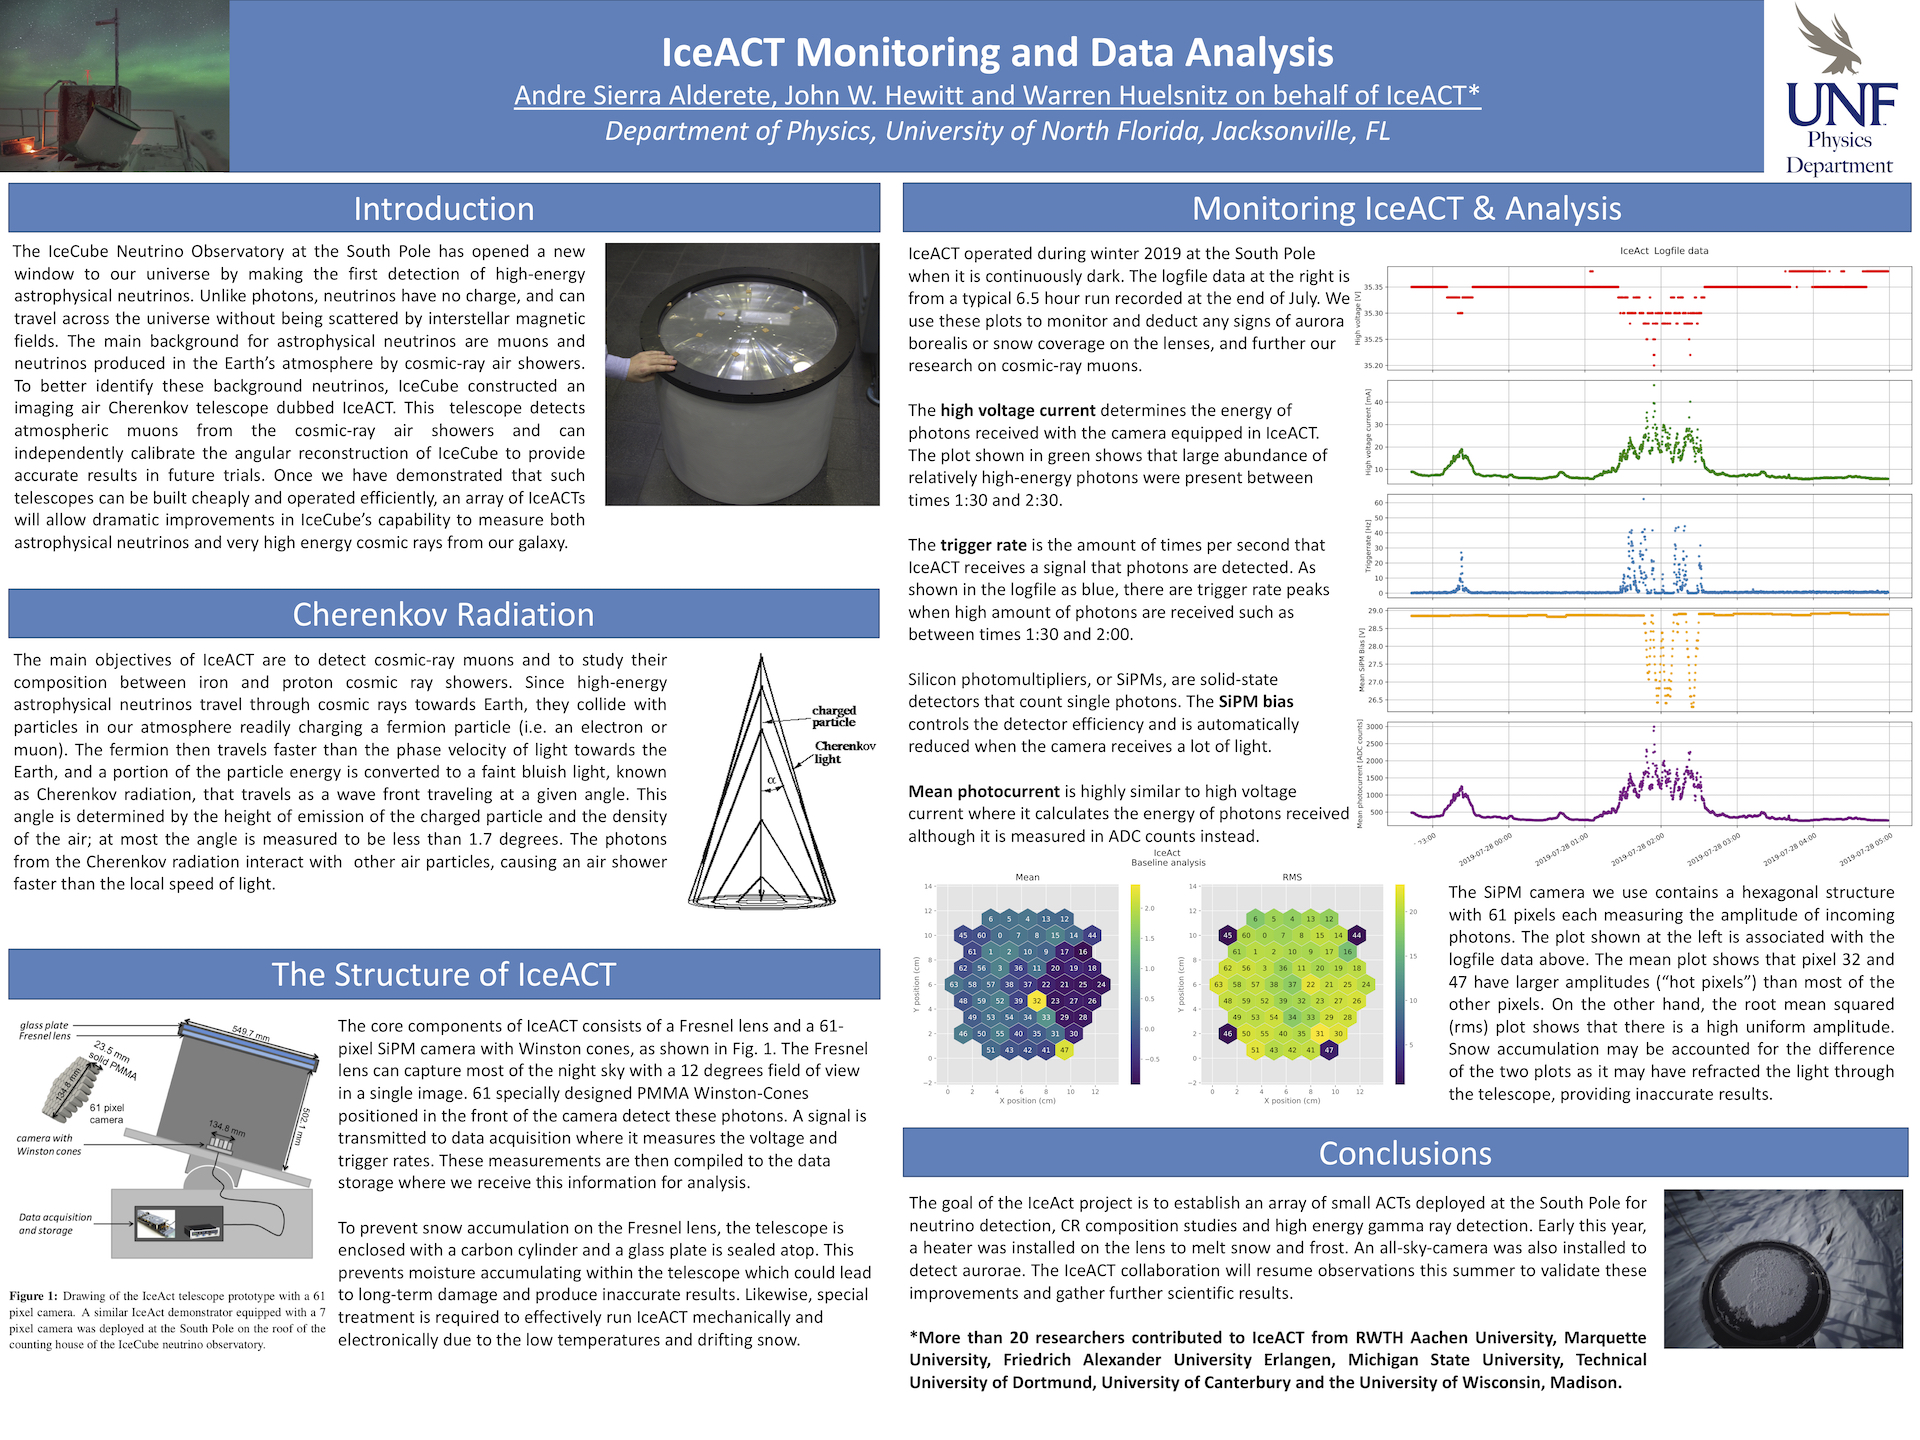 IceACT Monitoring and Data Analysis poster